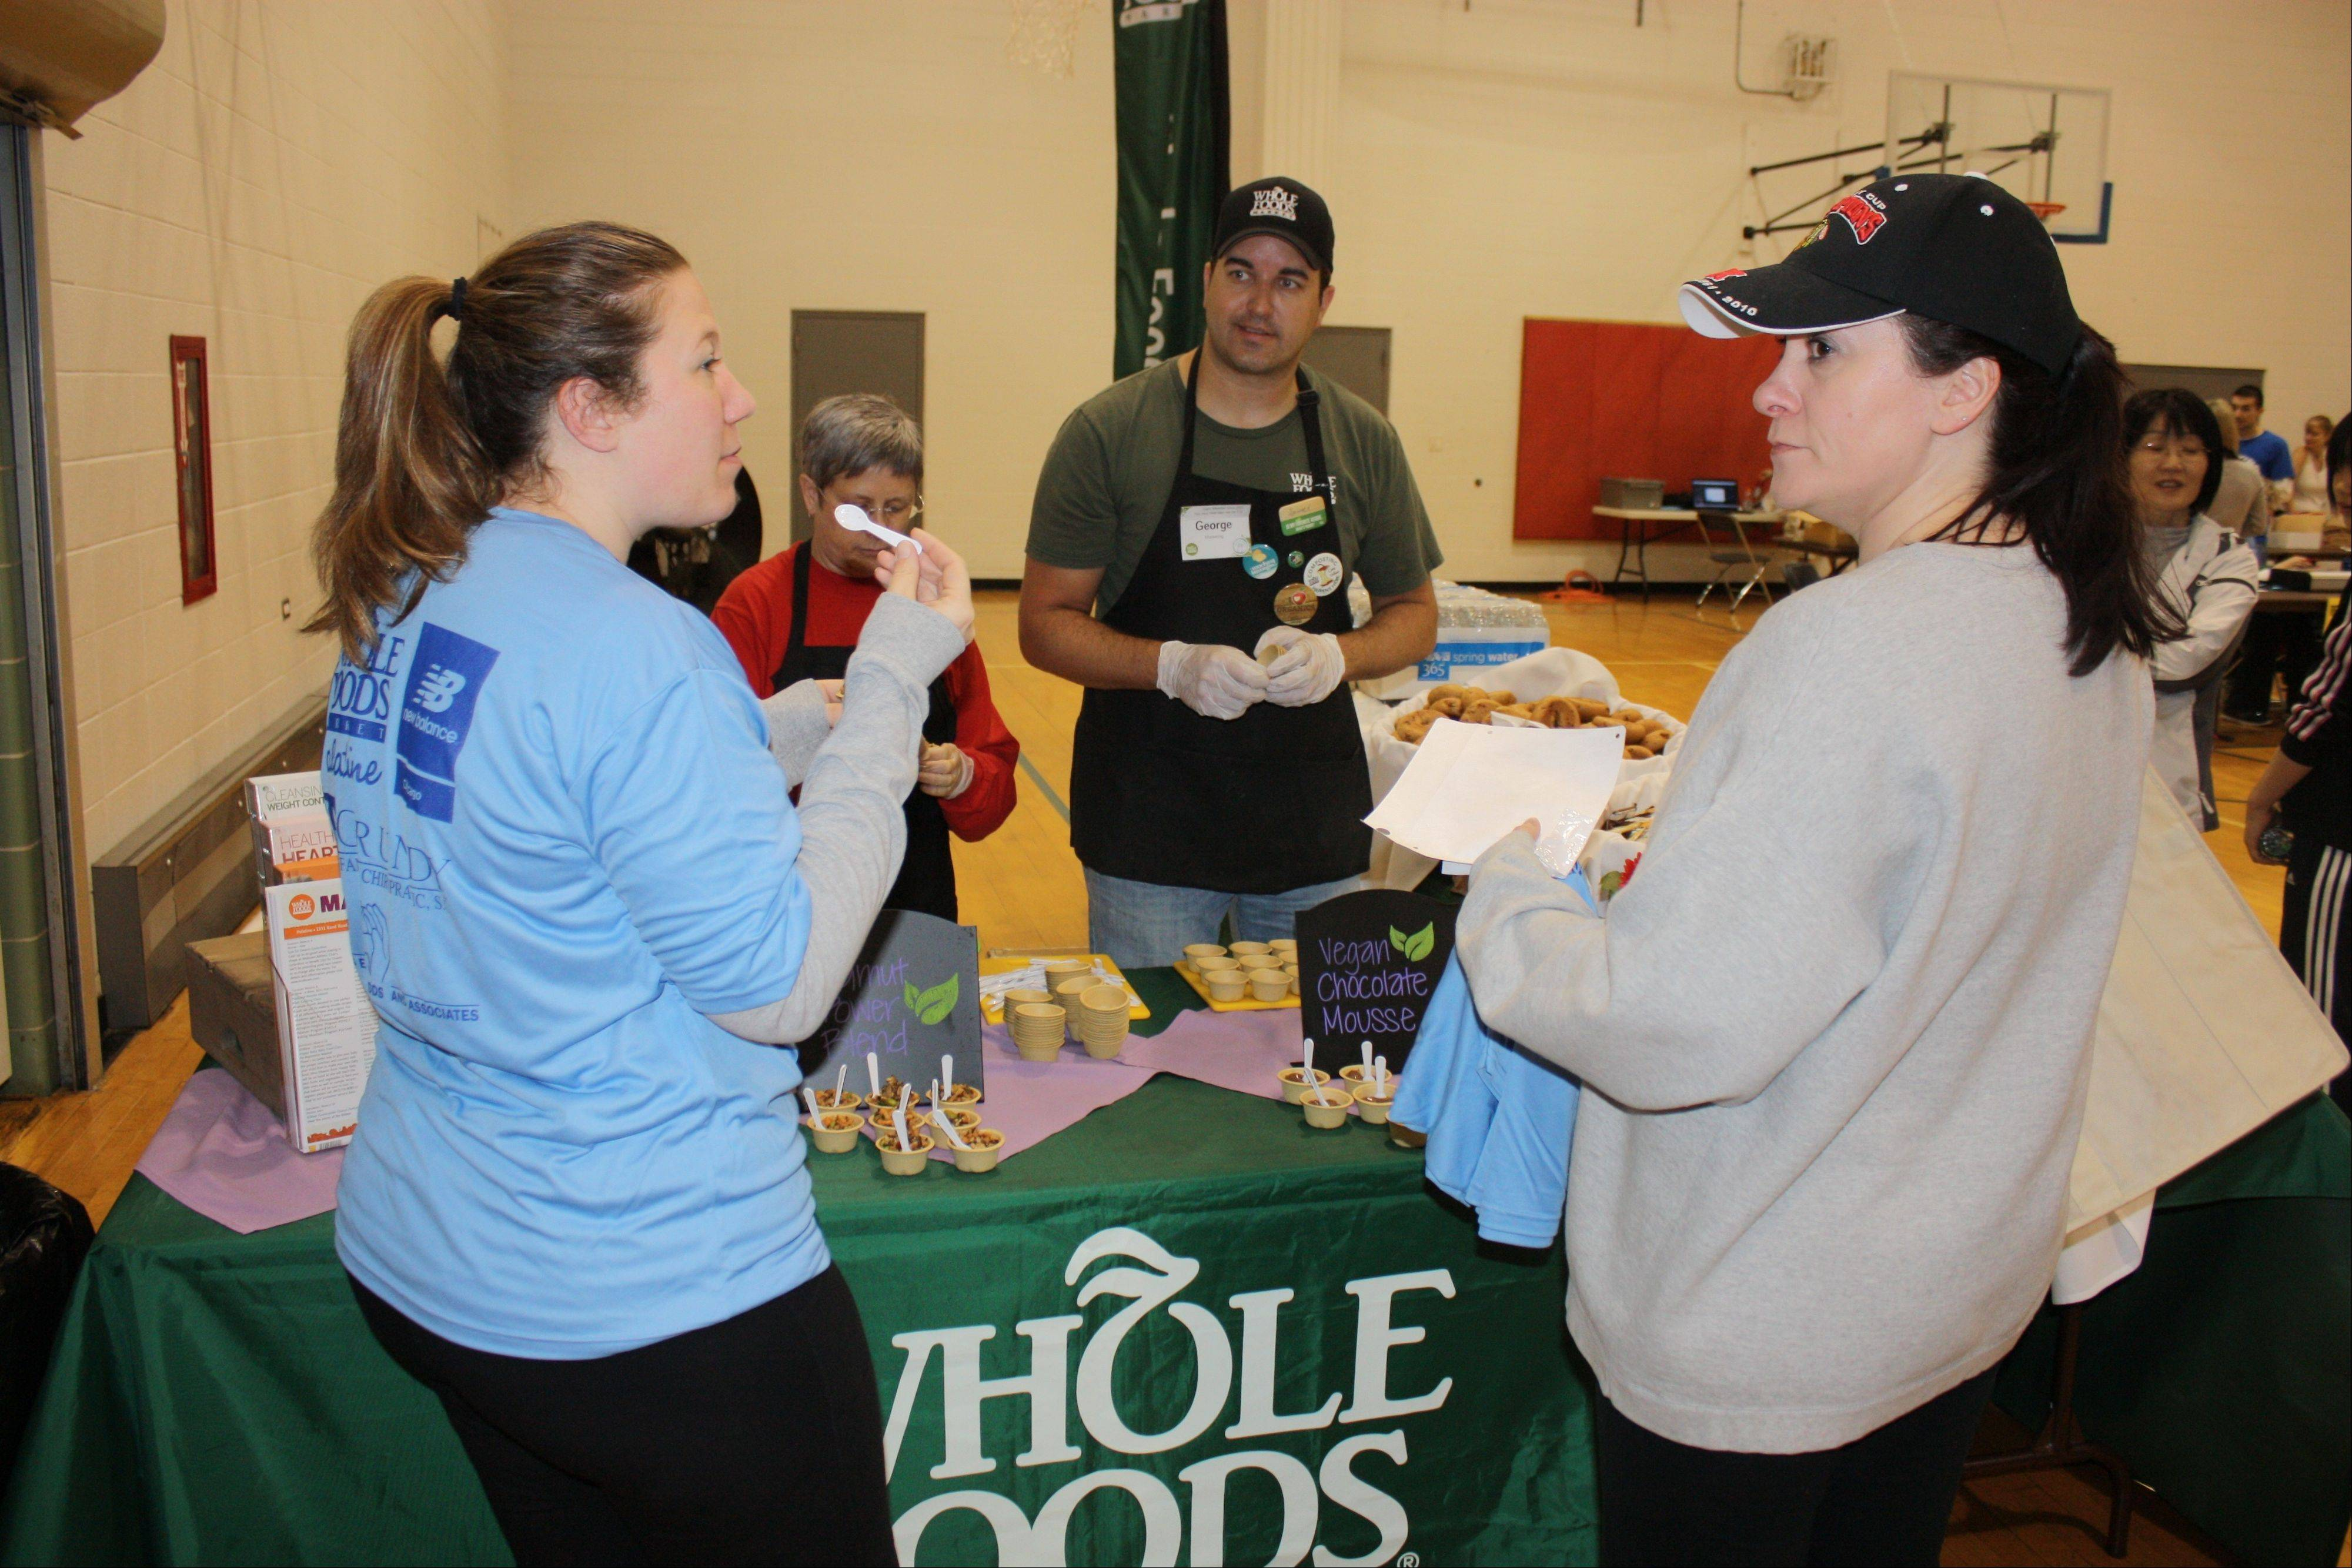 Visitors sampled healthy food items from Whole Foods during last year's Healthy Living Expo in Palatine.